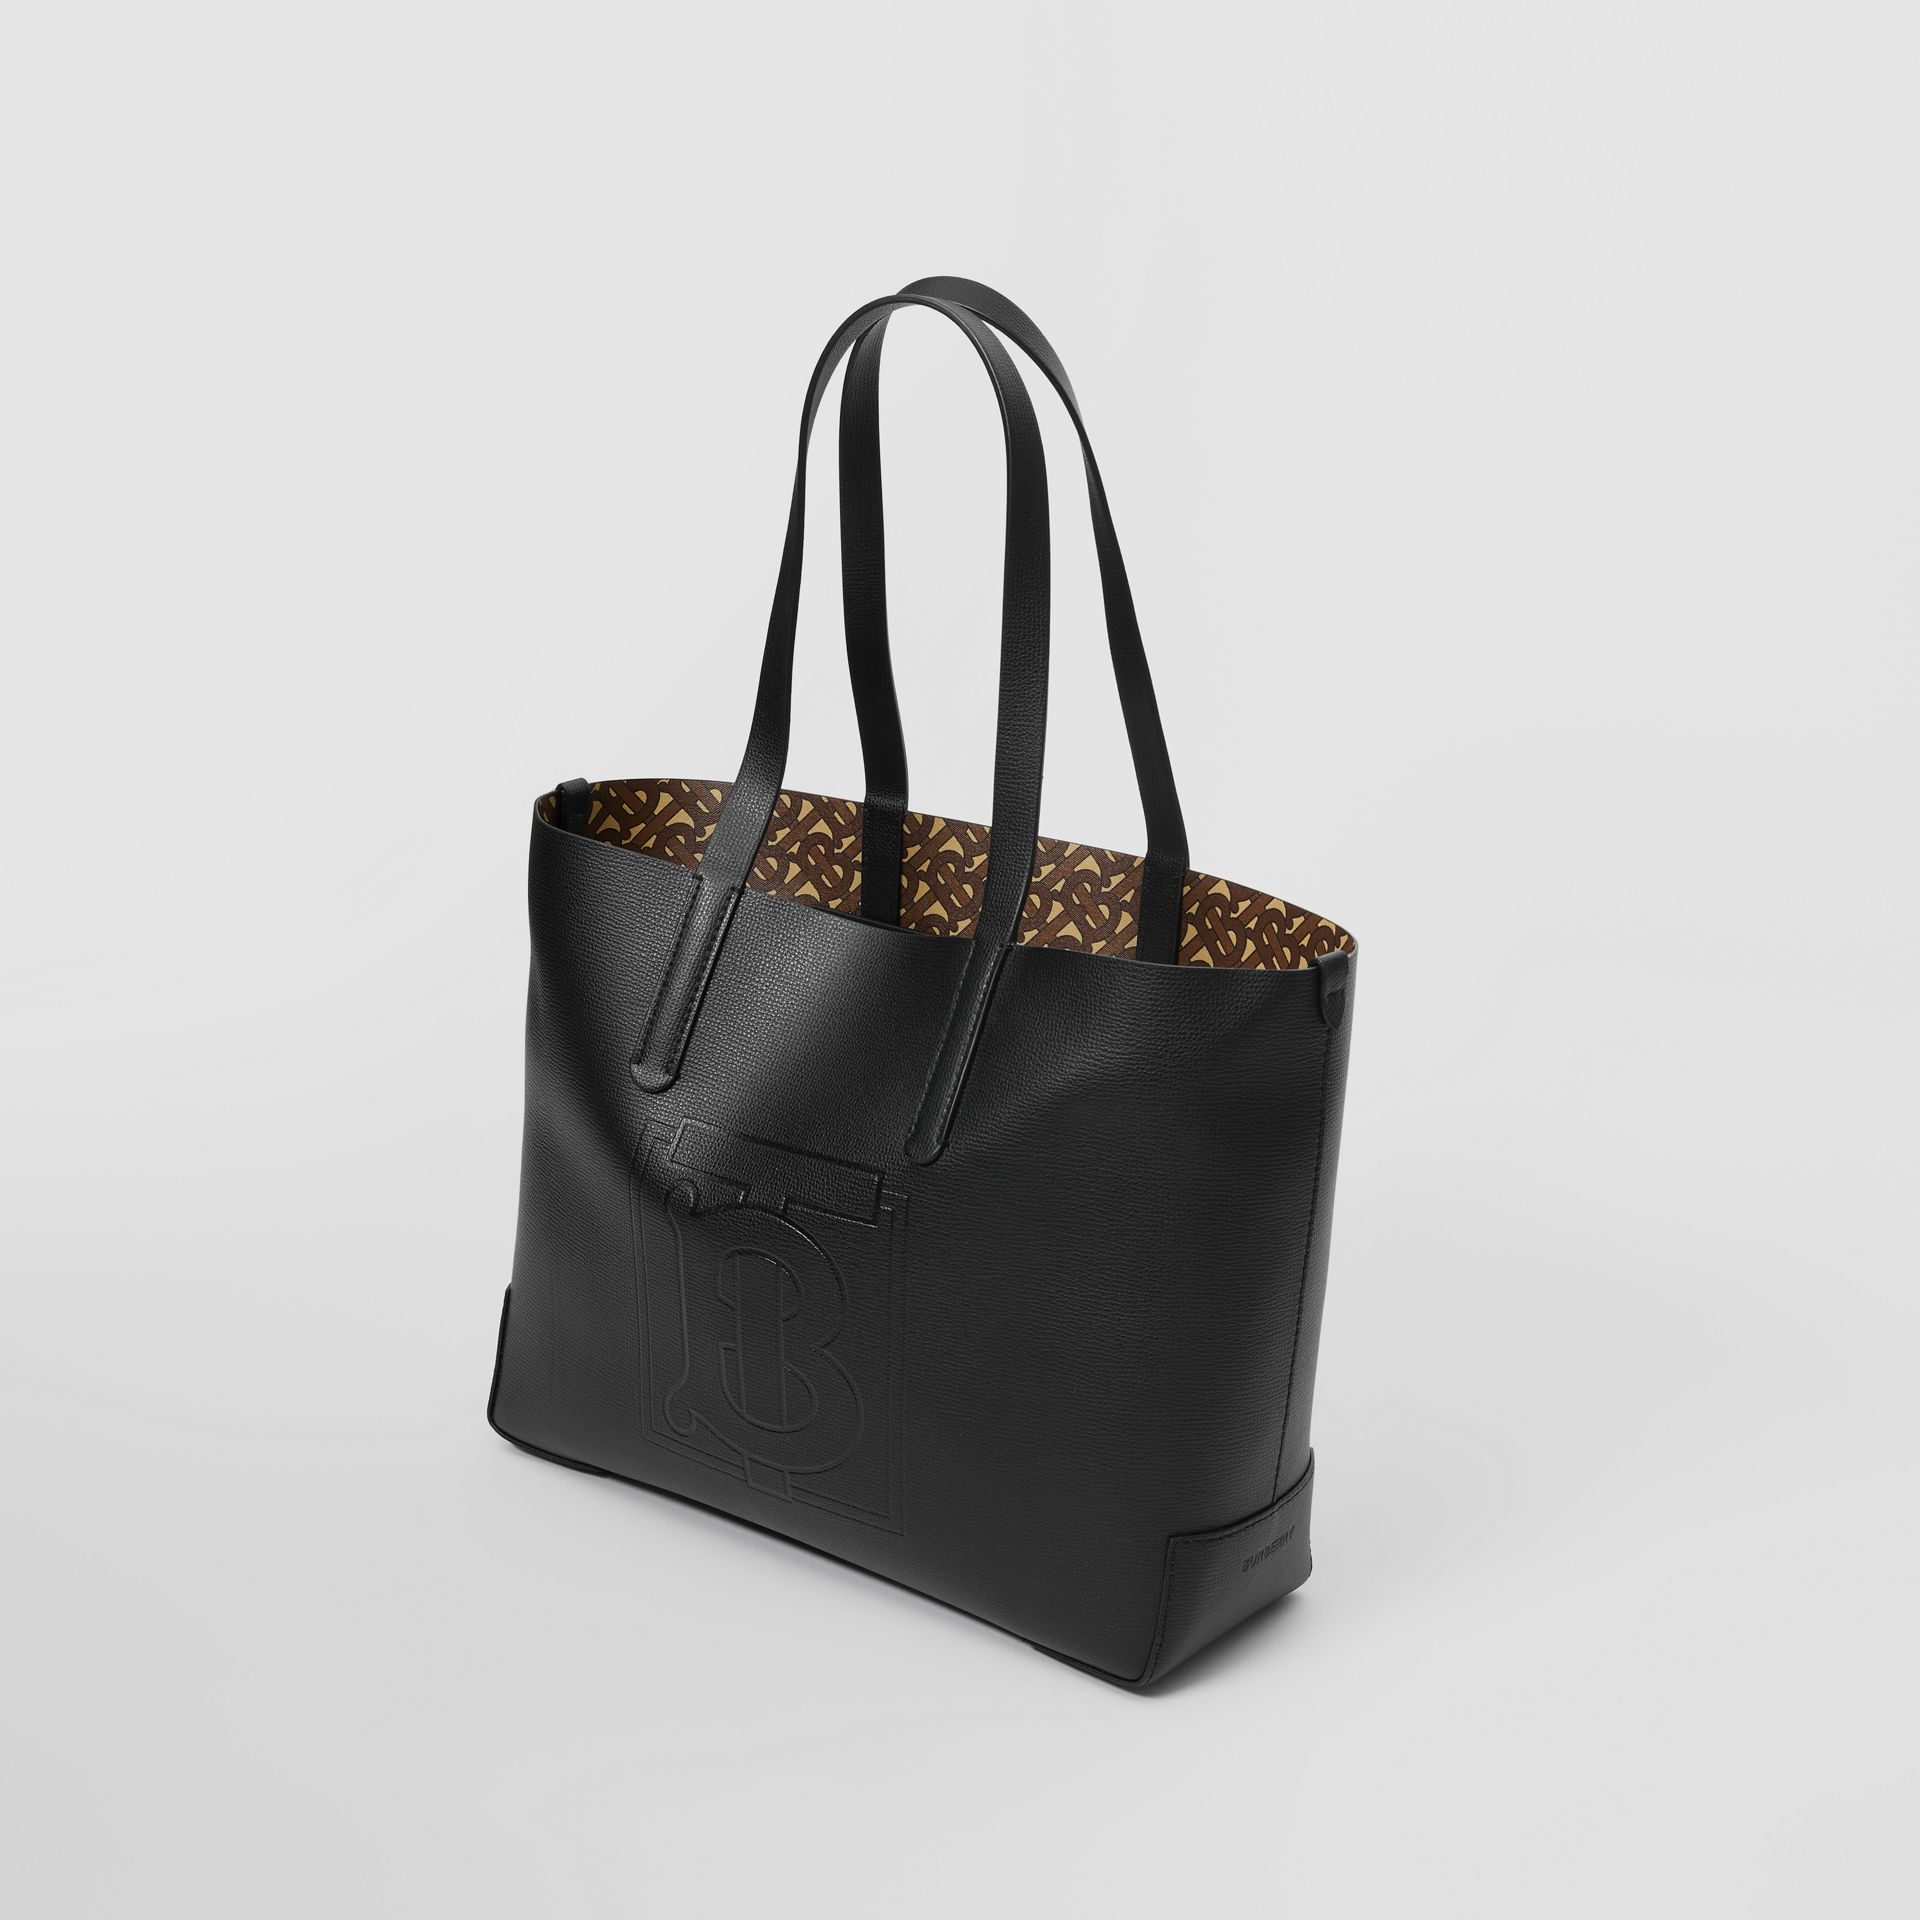 Embossed Monogram Motif Leather Tote in Black - Women | Burberry - gallery image 2